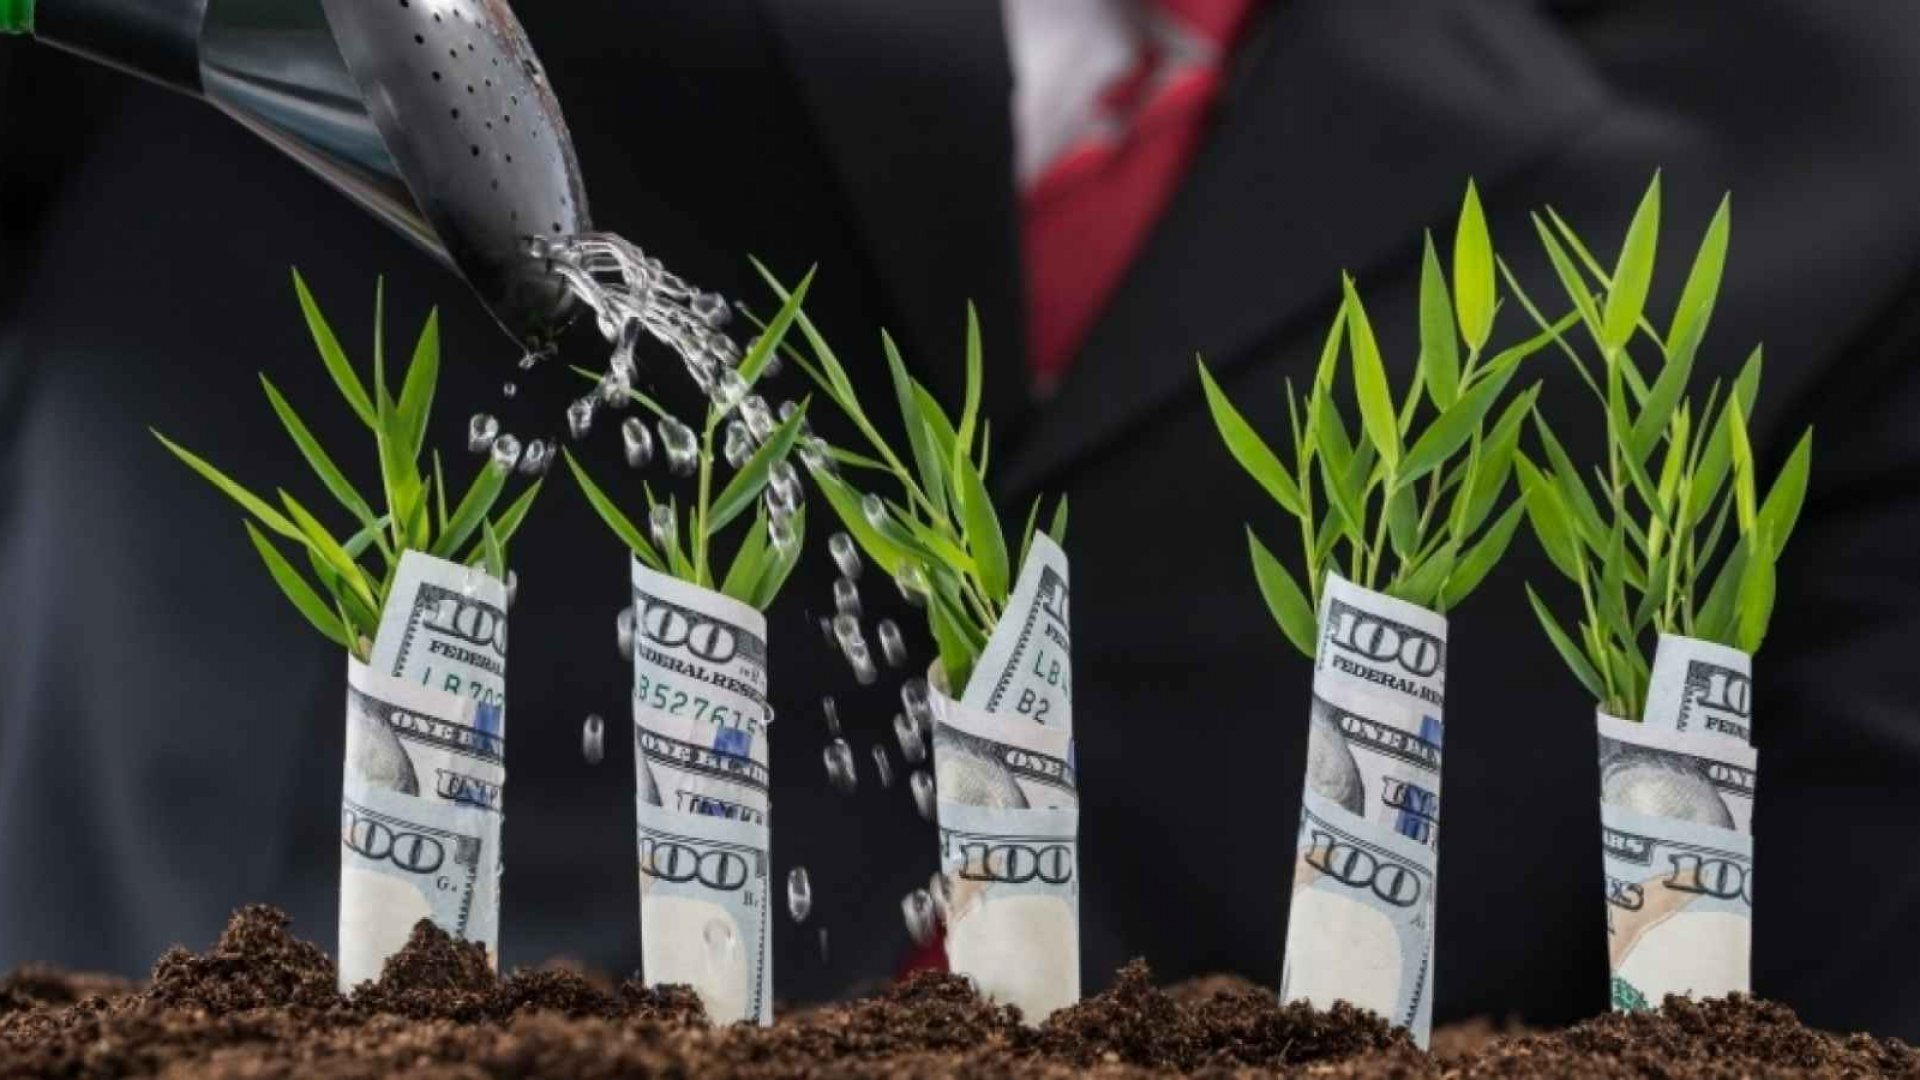 5 Clever Ways to Raise Money for Your Startup Without Making an Investor Pitch